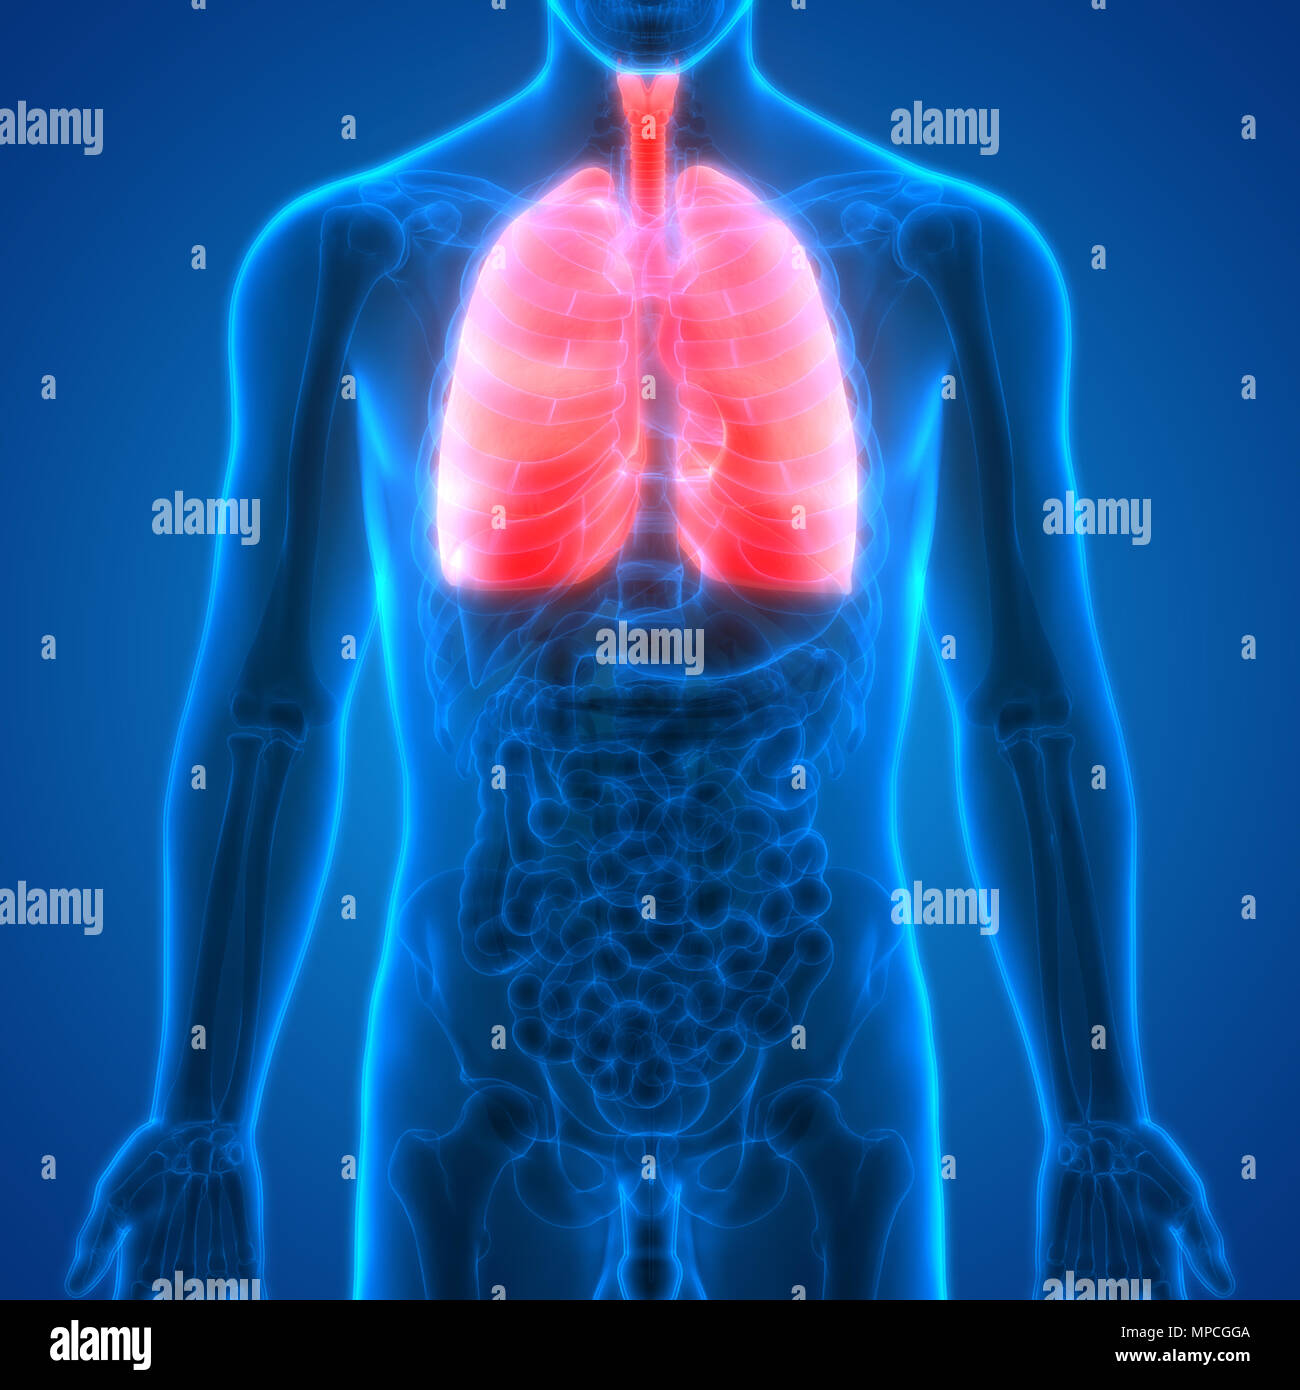 Human Respiratory System Lungs Anatomy Stock Photo 185902538 Alamy